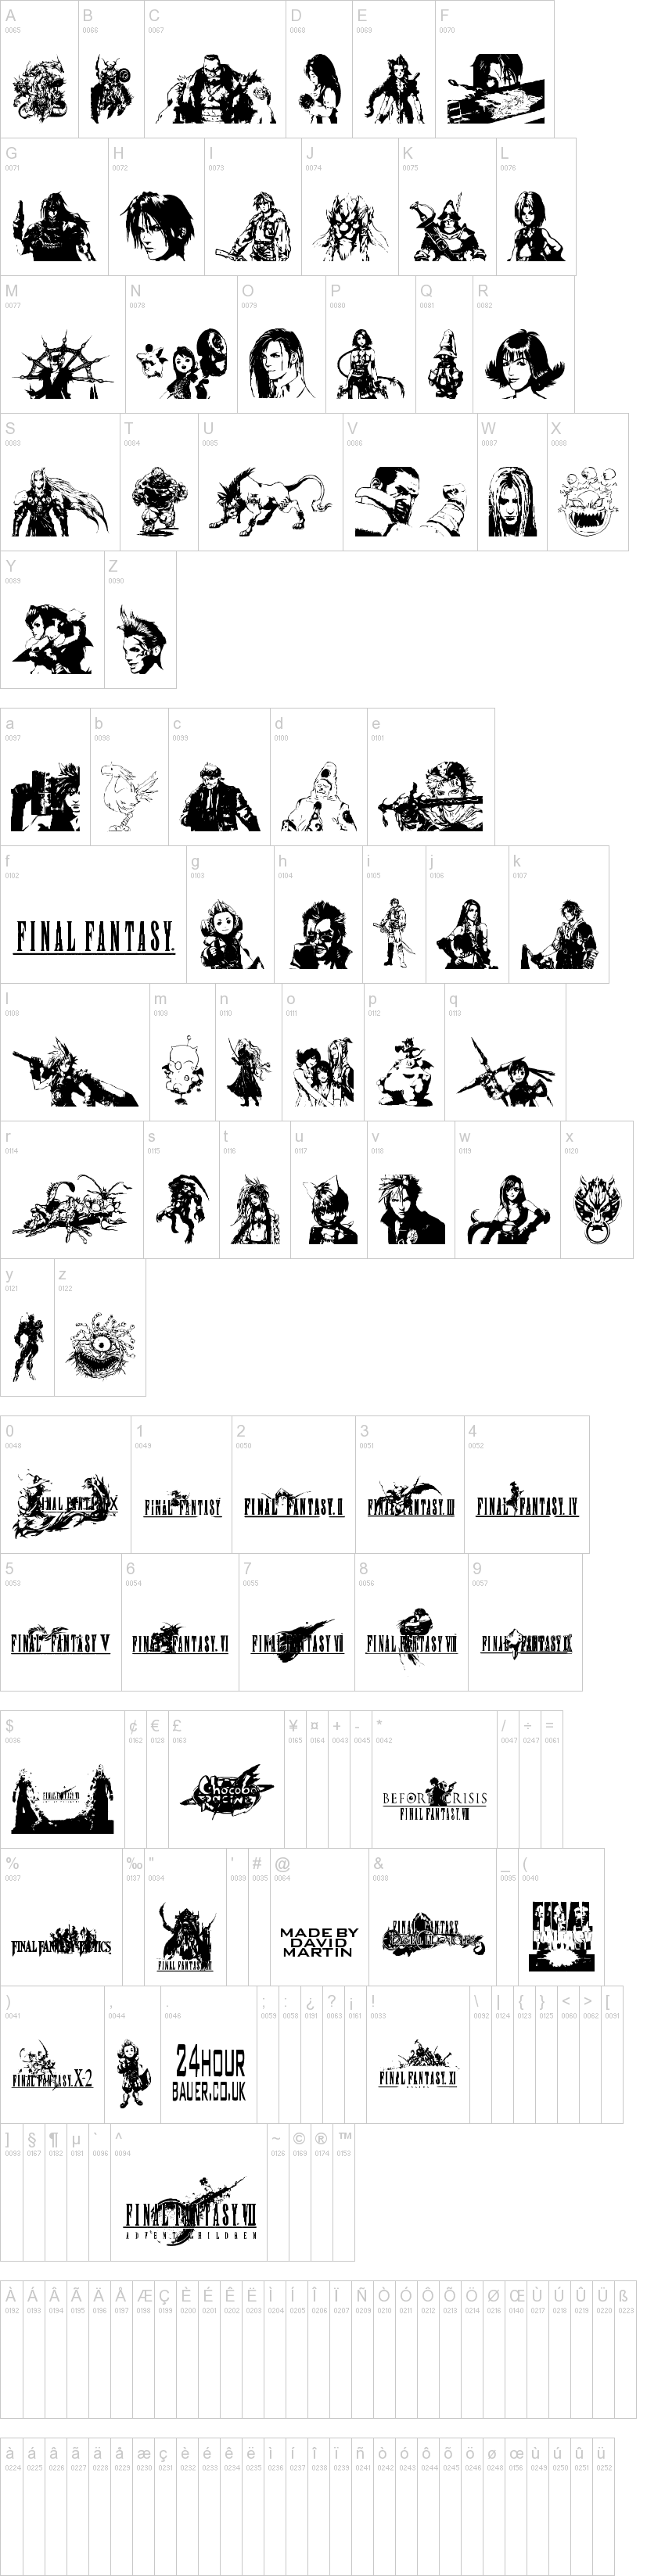 Final Fantasy Elements